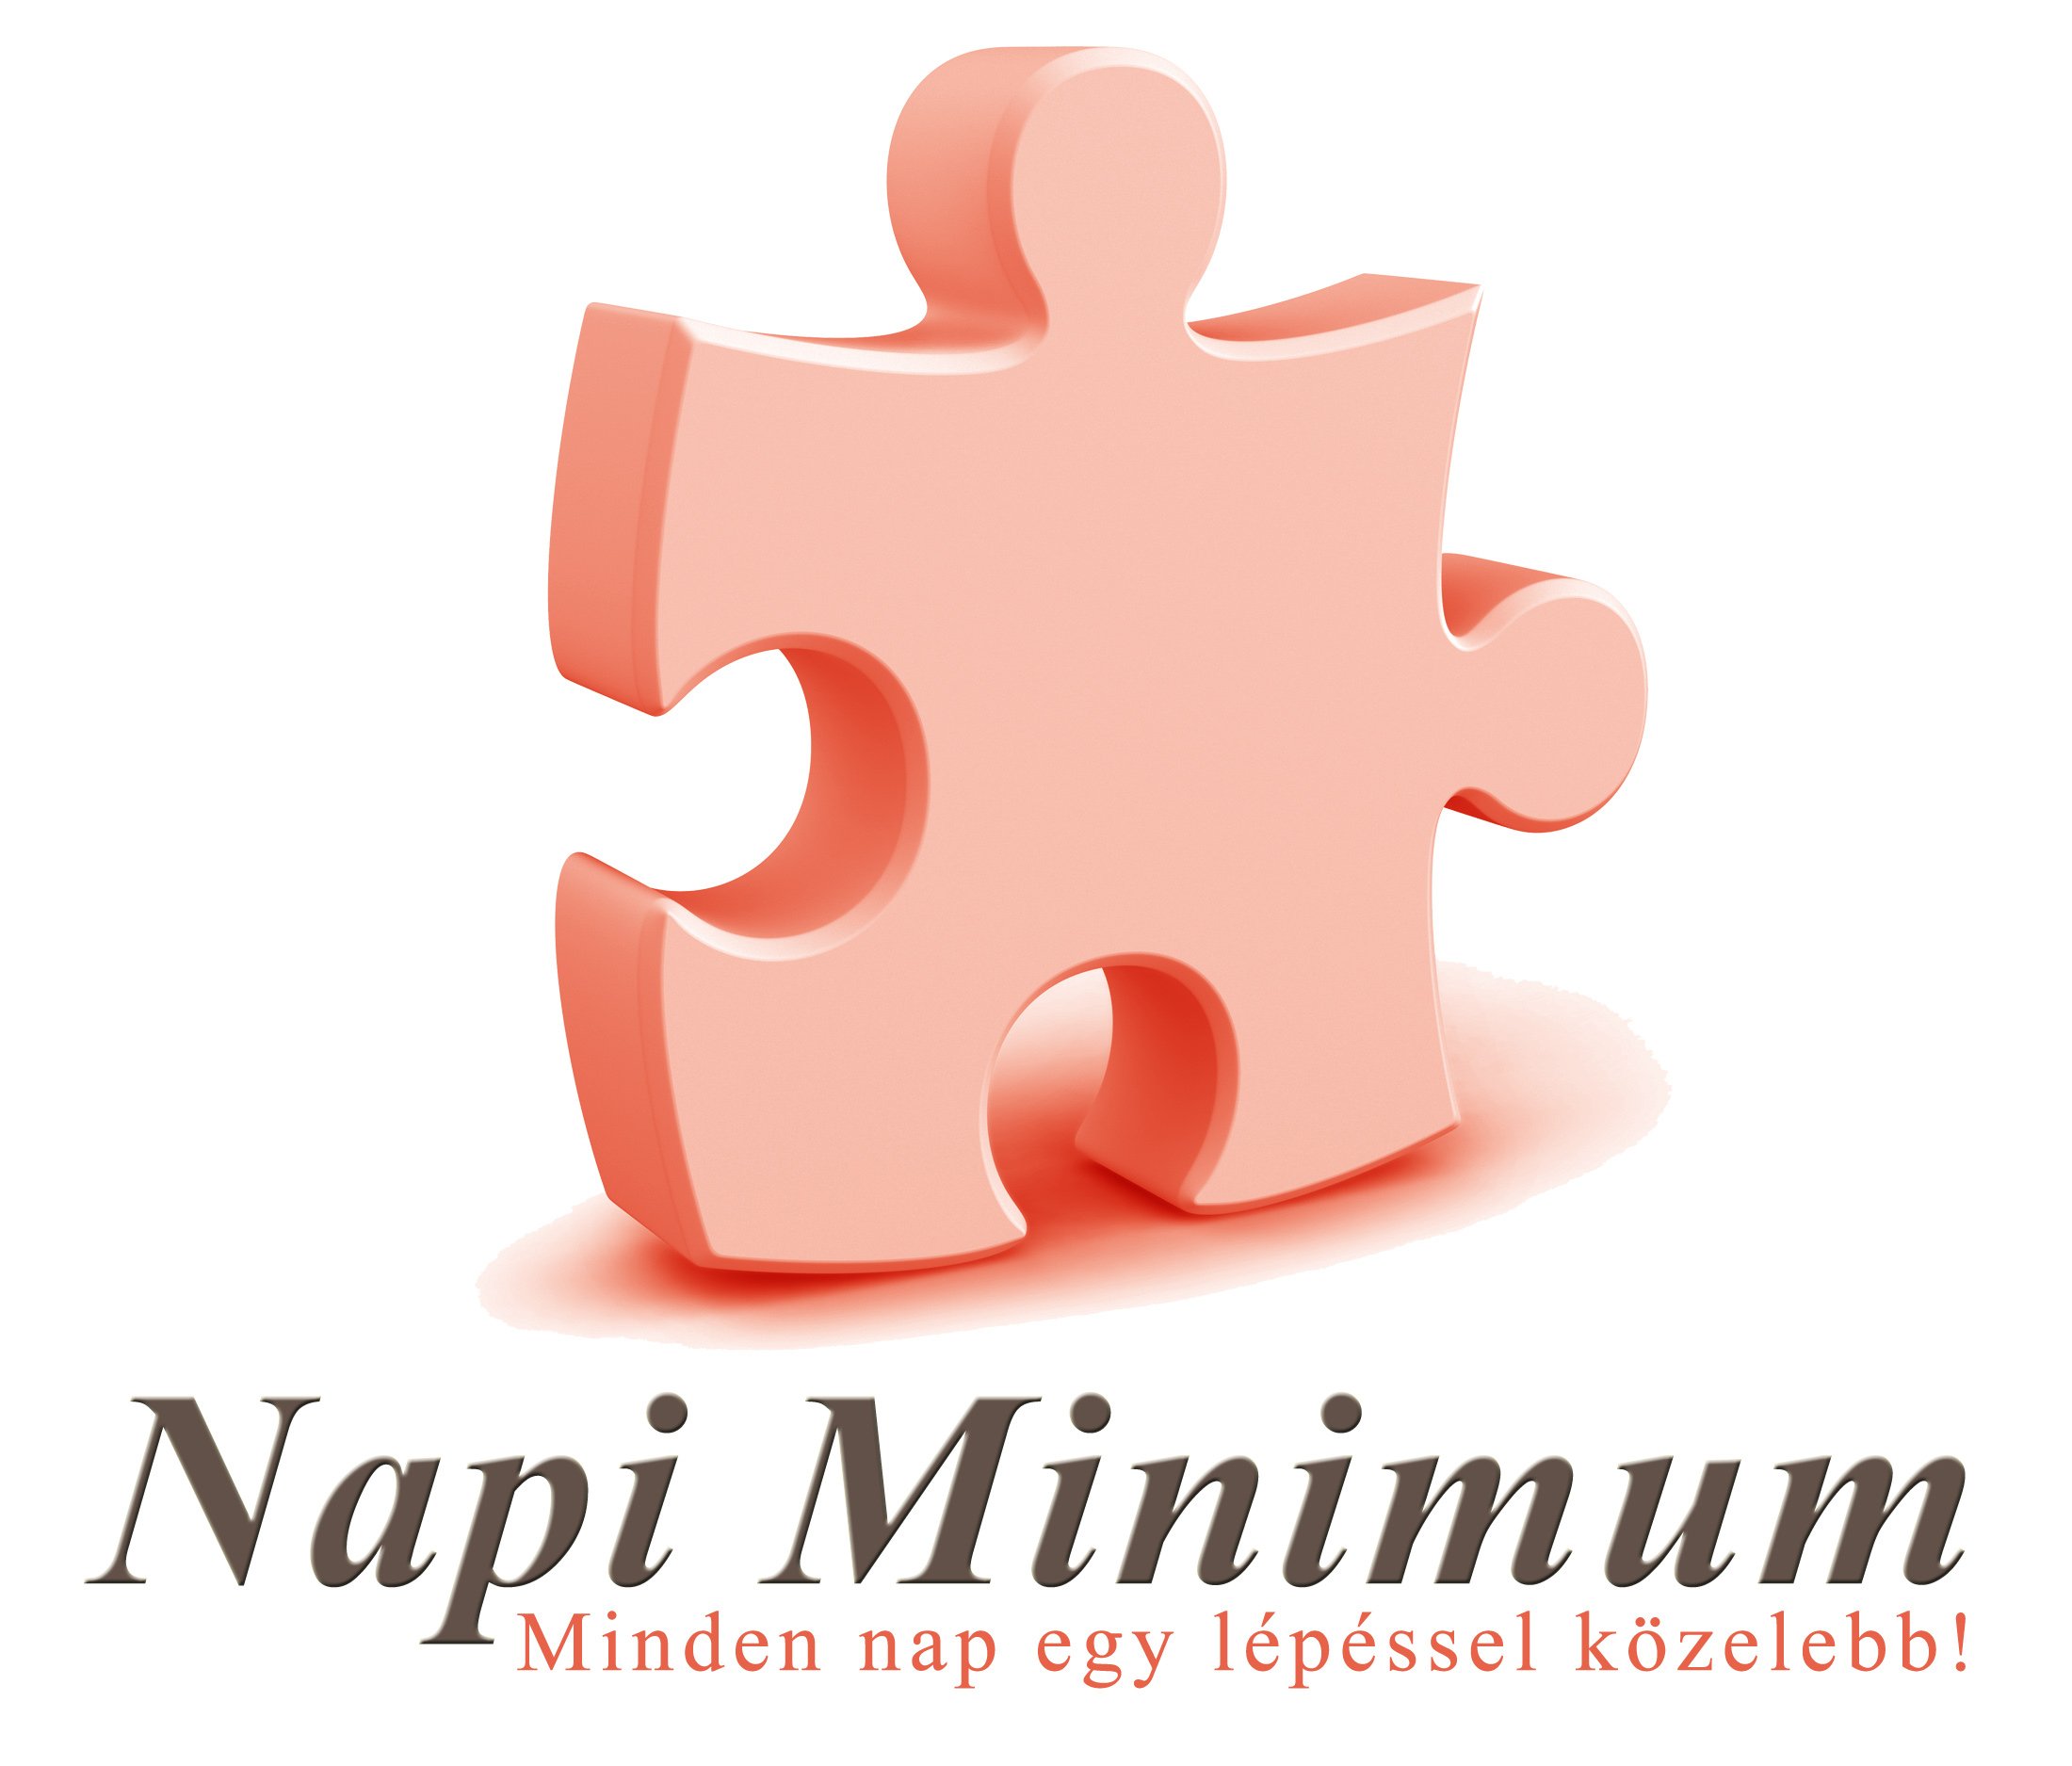 Napi minimum